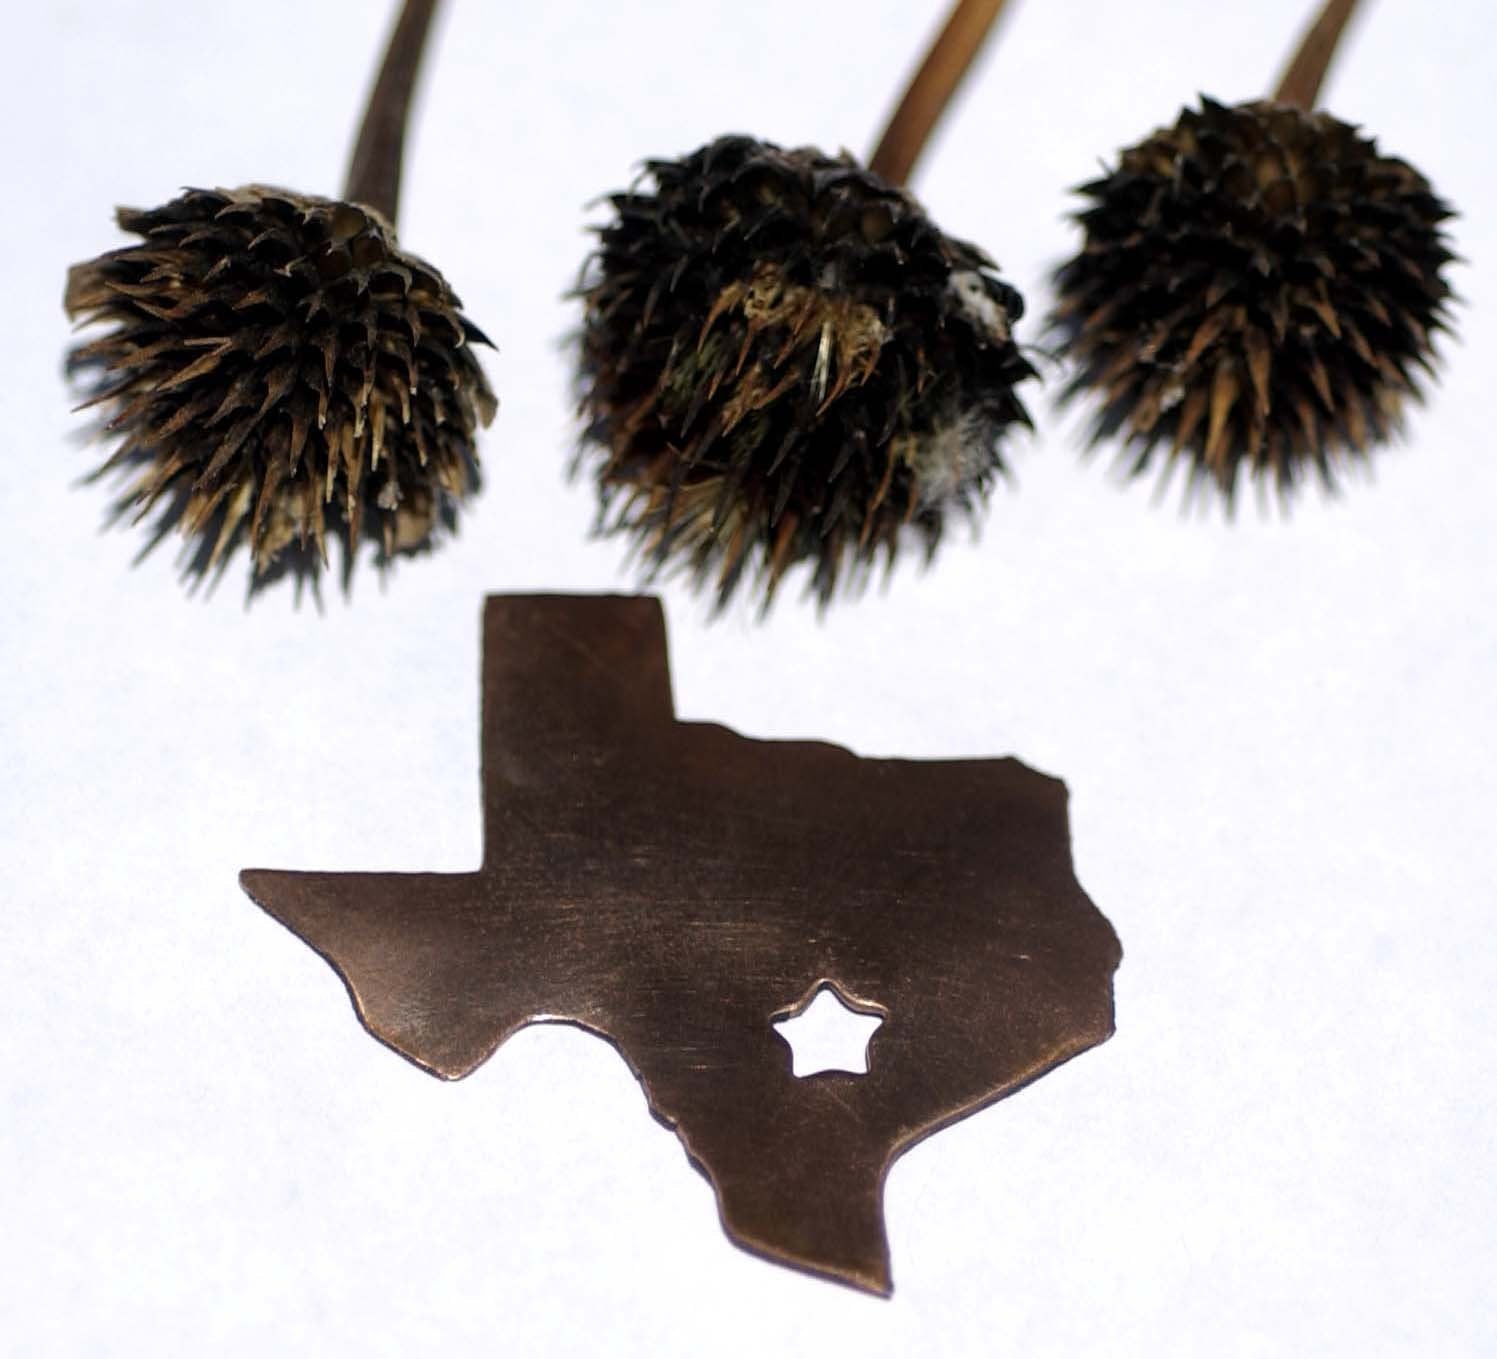 Texas State with Star Perfect Cute Blanks Cutout for Metalworking Stamping Texturing Blank Variety of Metals